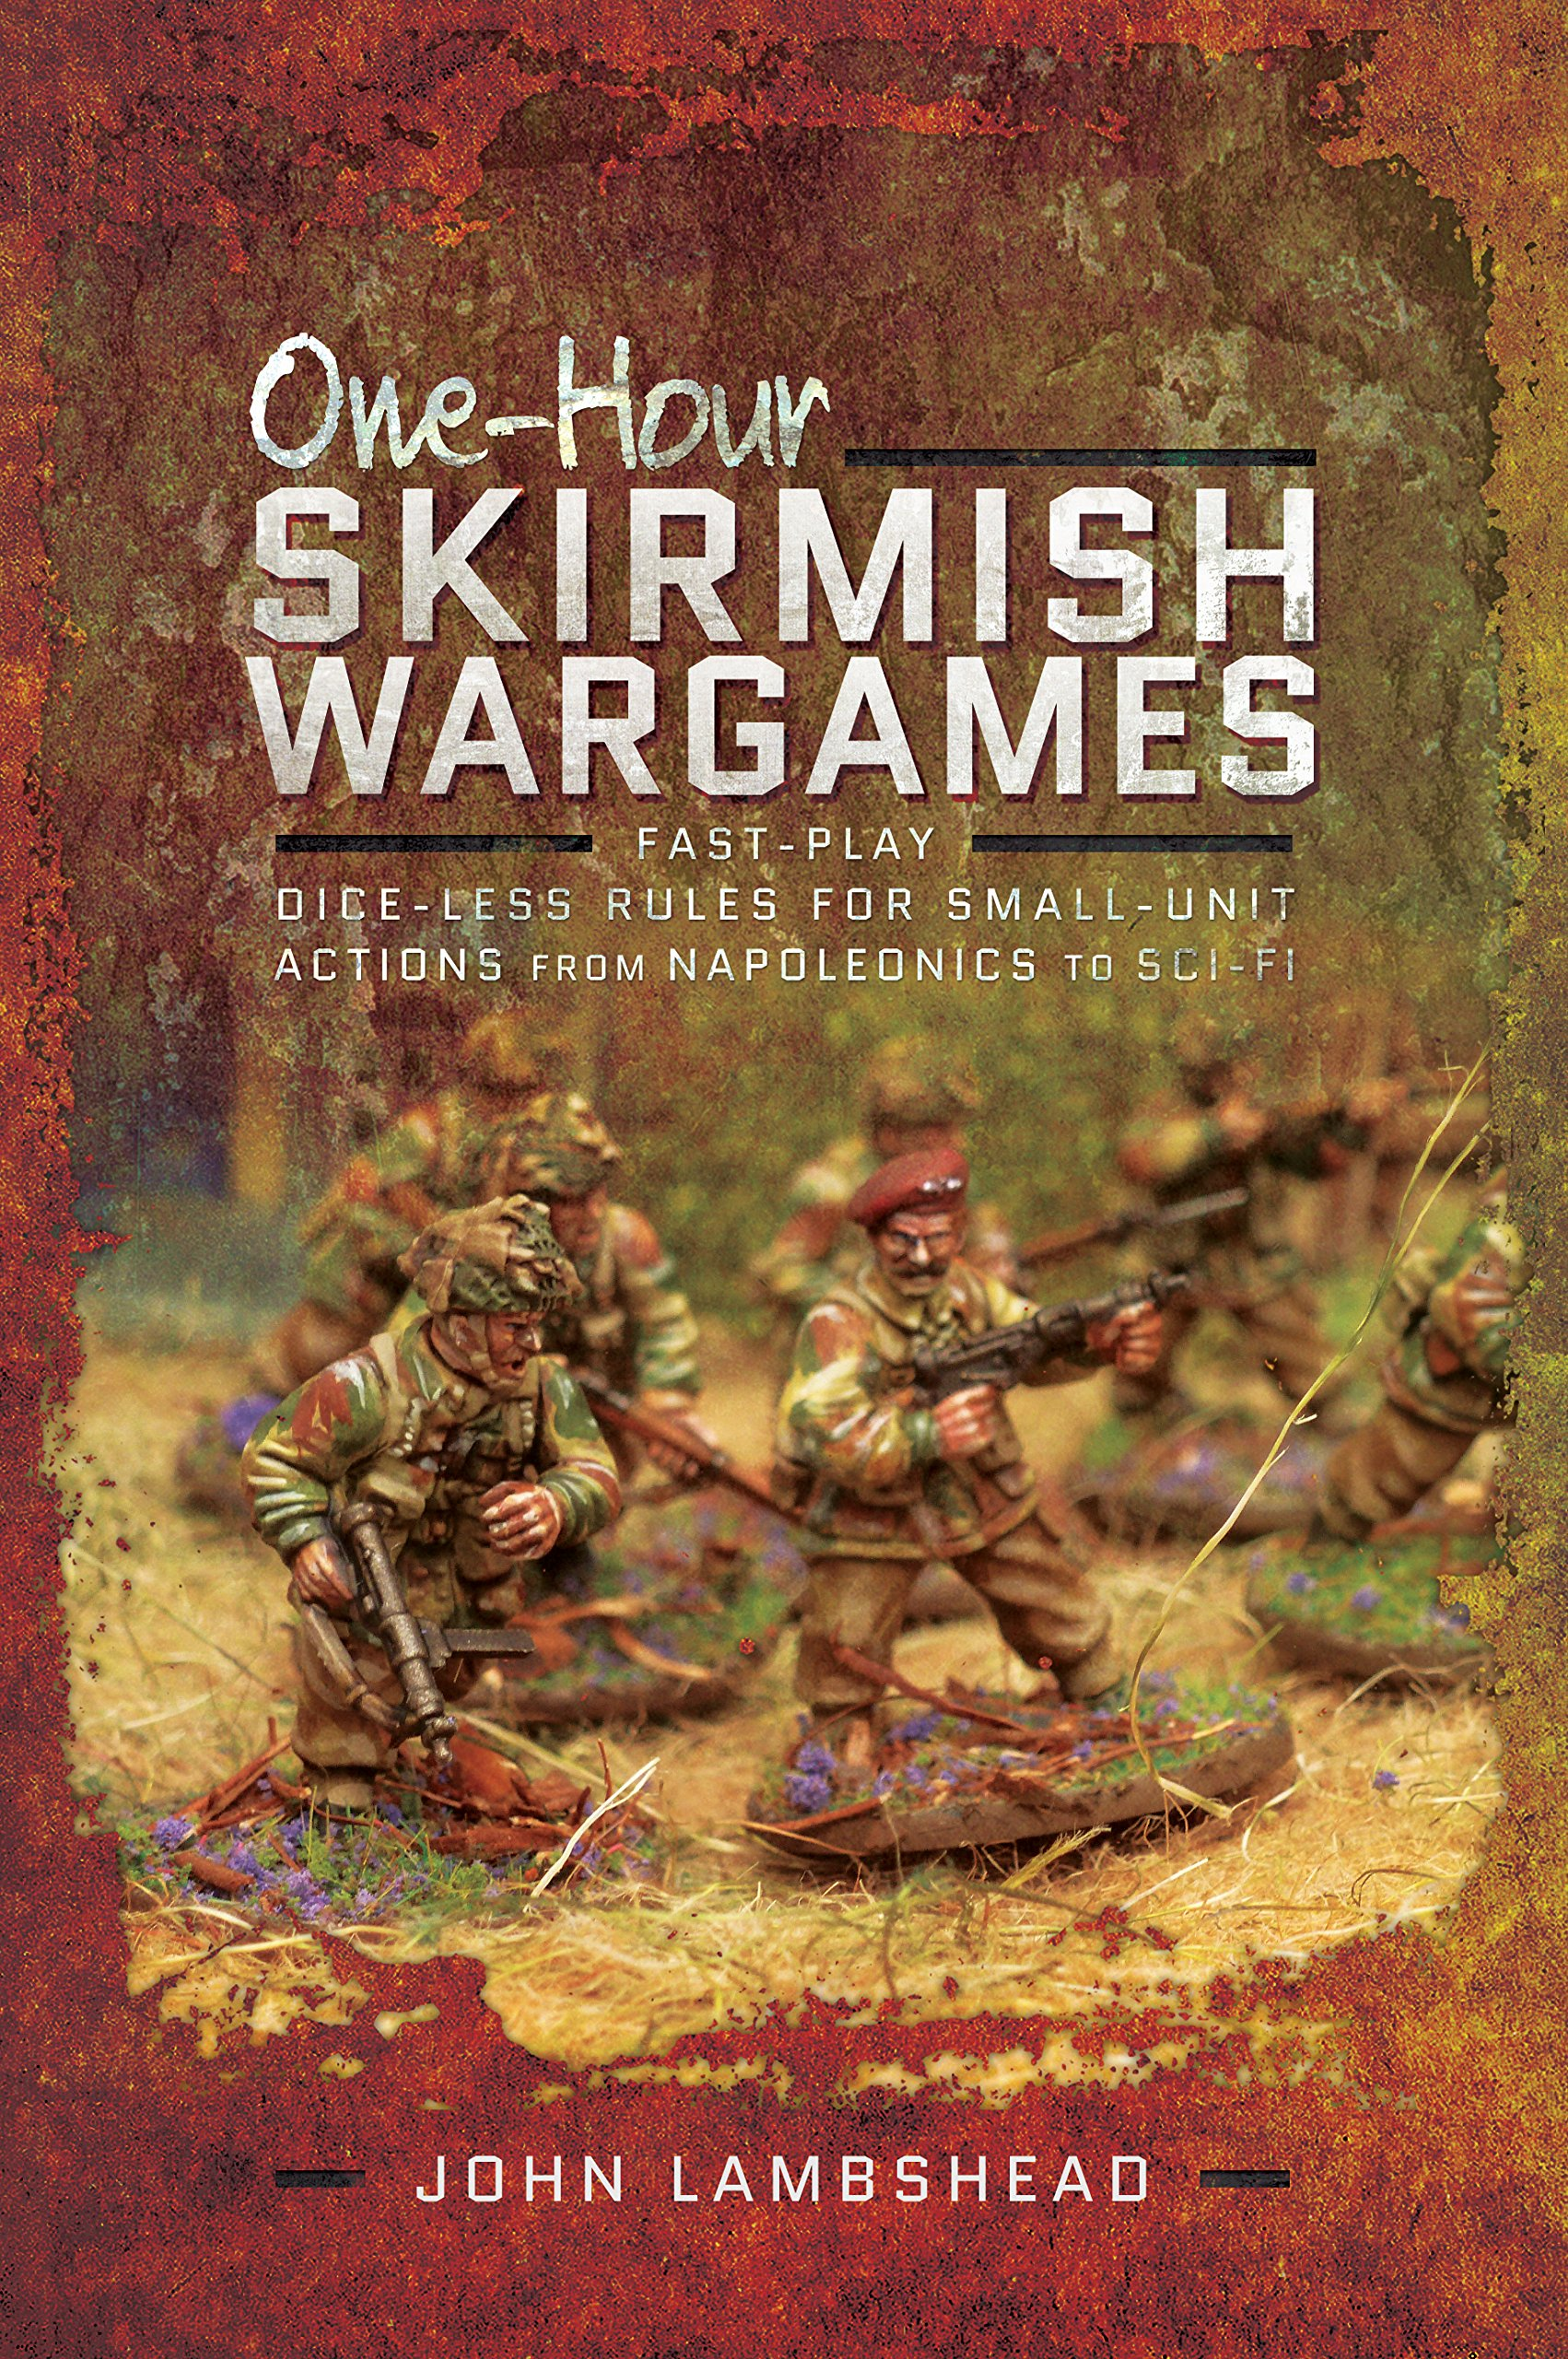 One-hour Skirmish Wargames: Fast-play Dice-less Rules for Small-unit